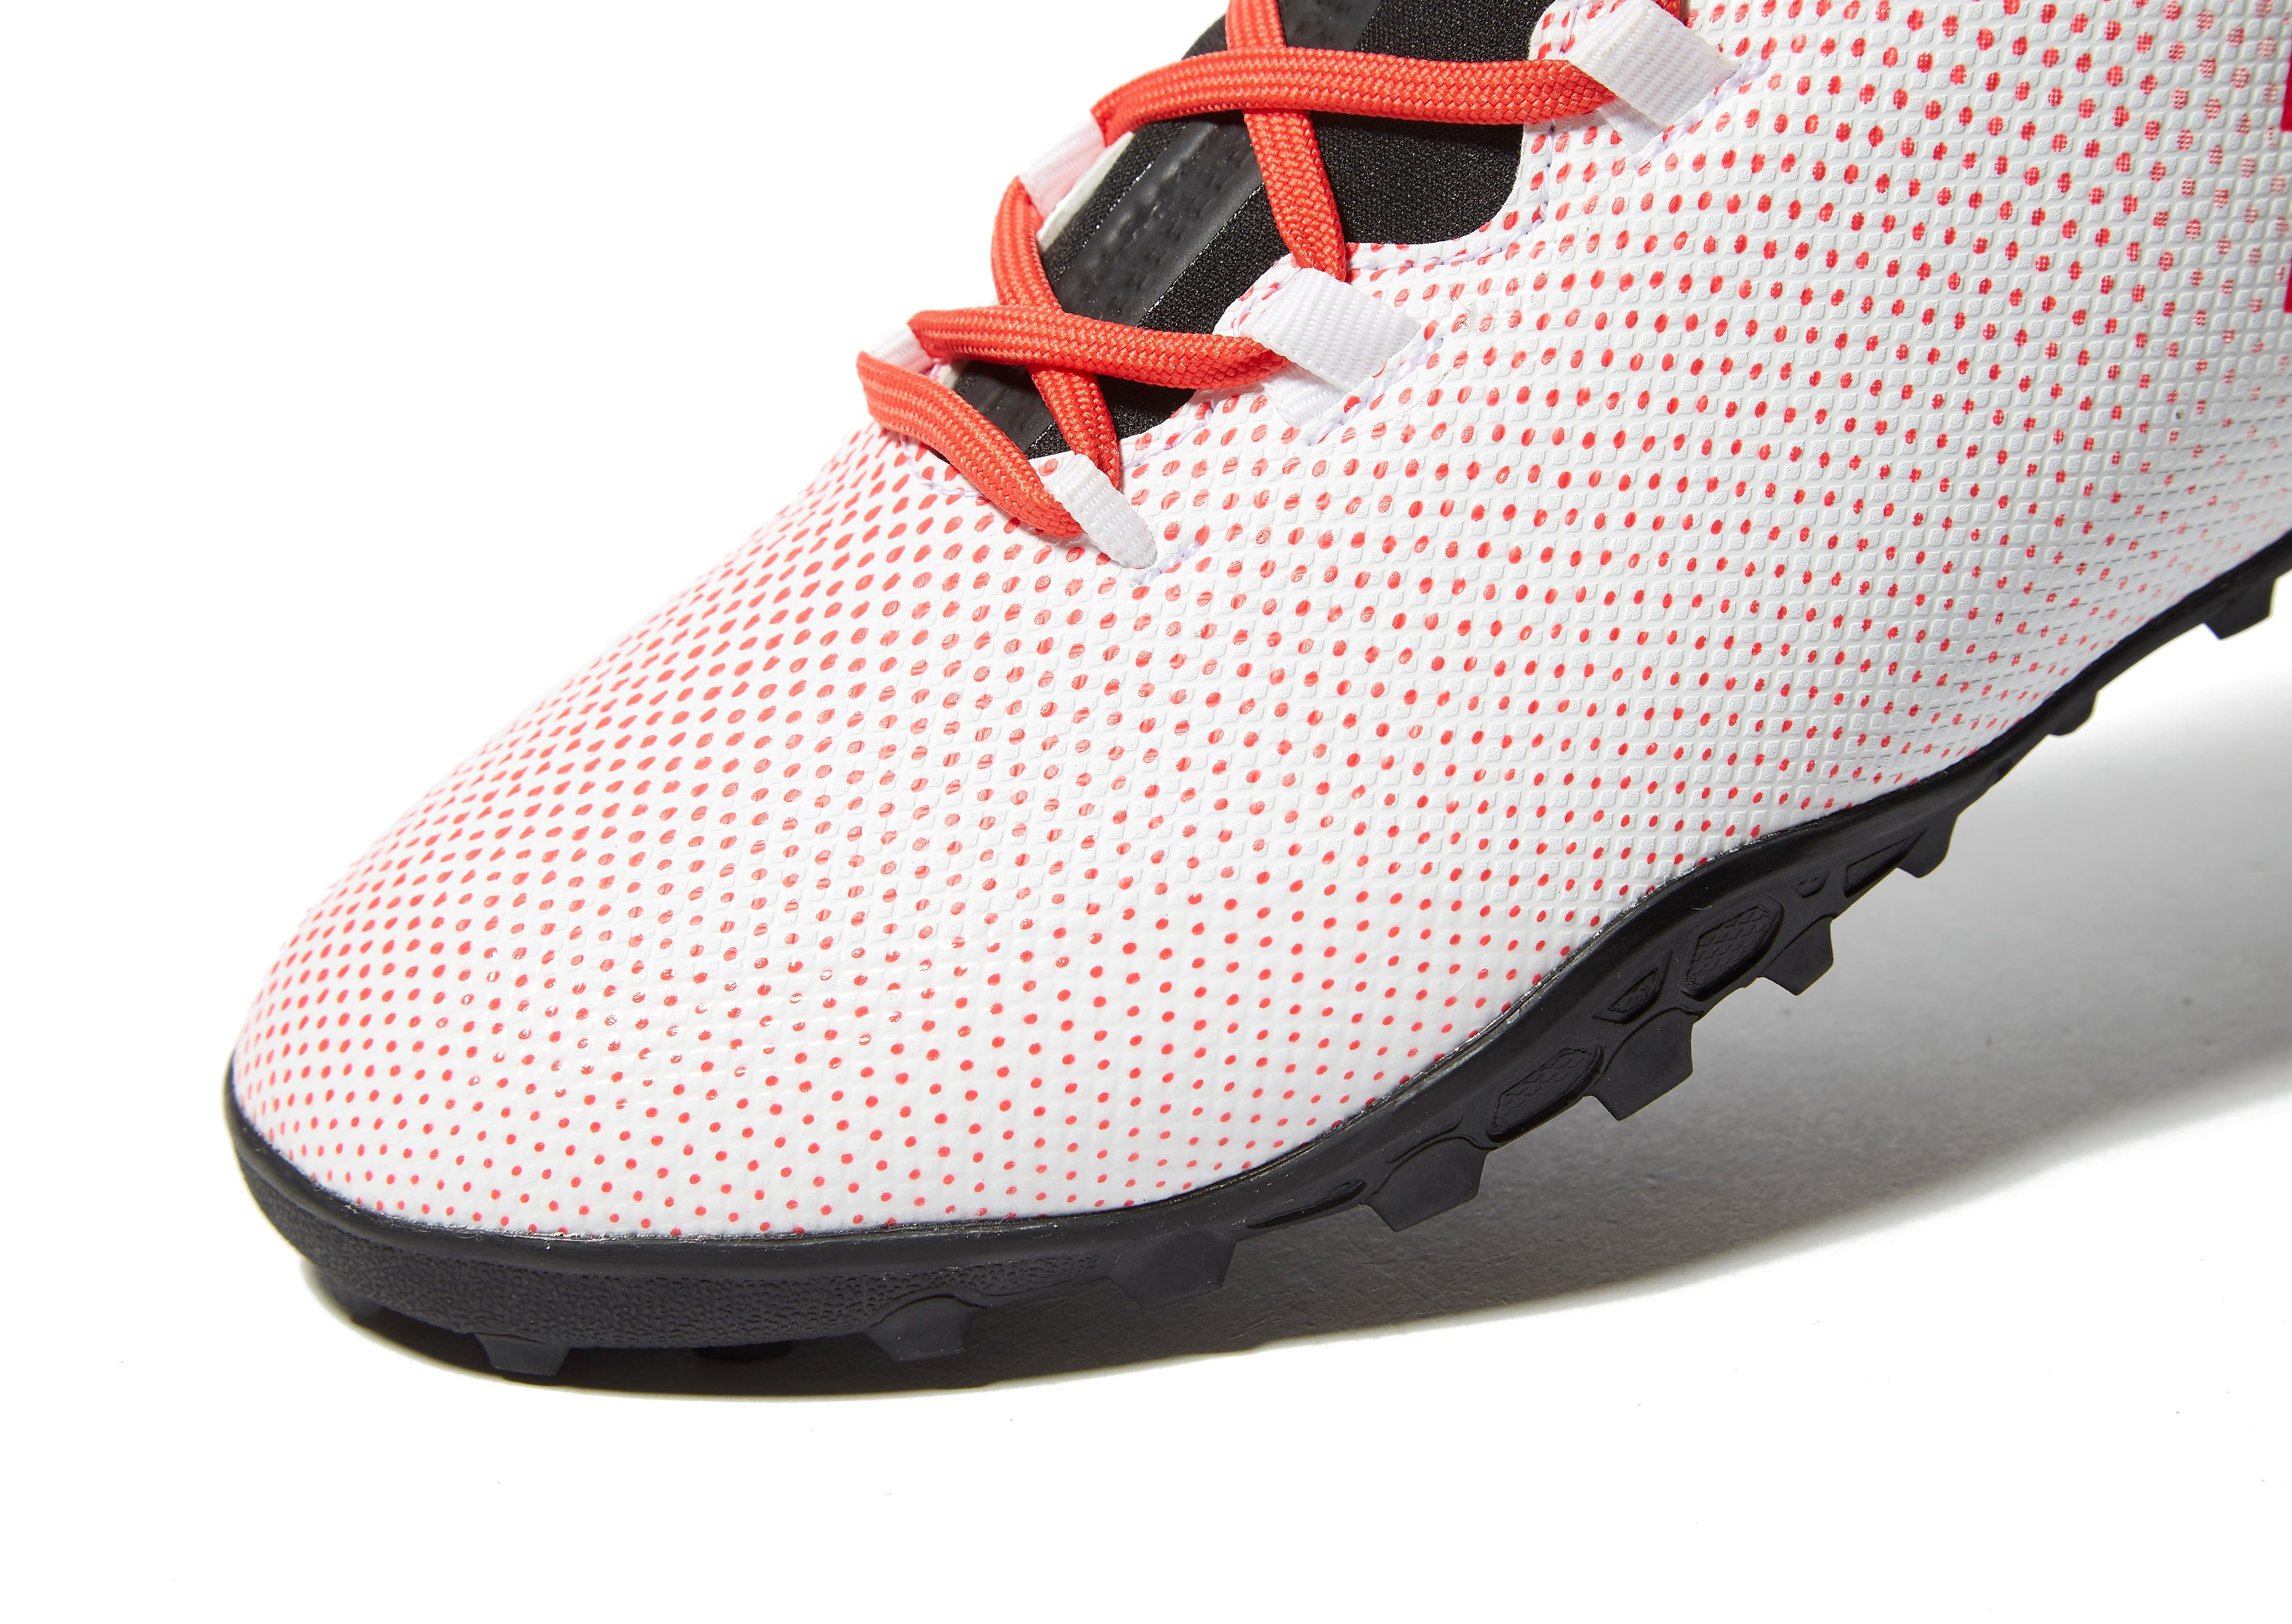 adidas Cold Blooded X 17.3 TF Children